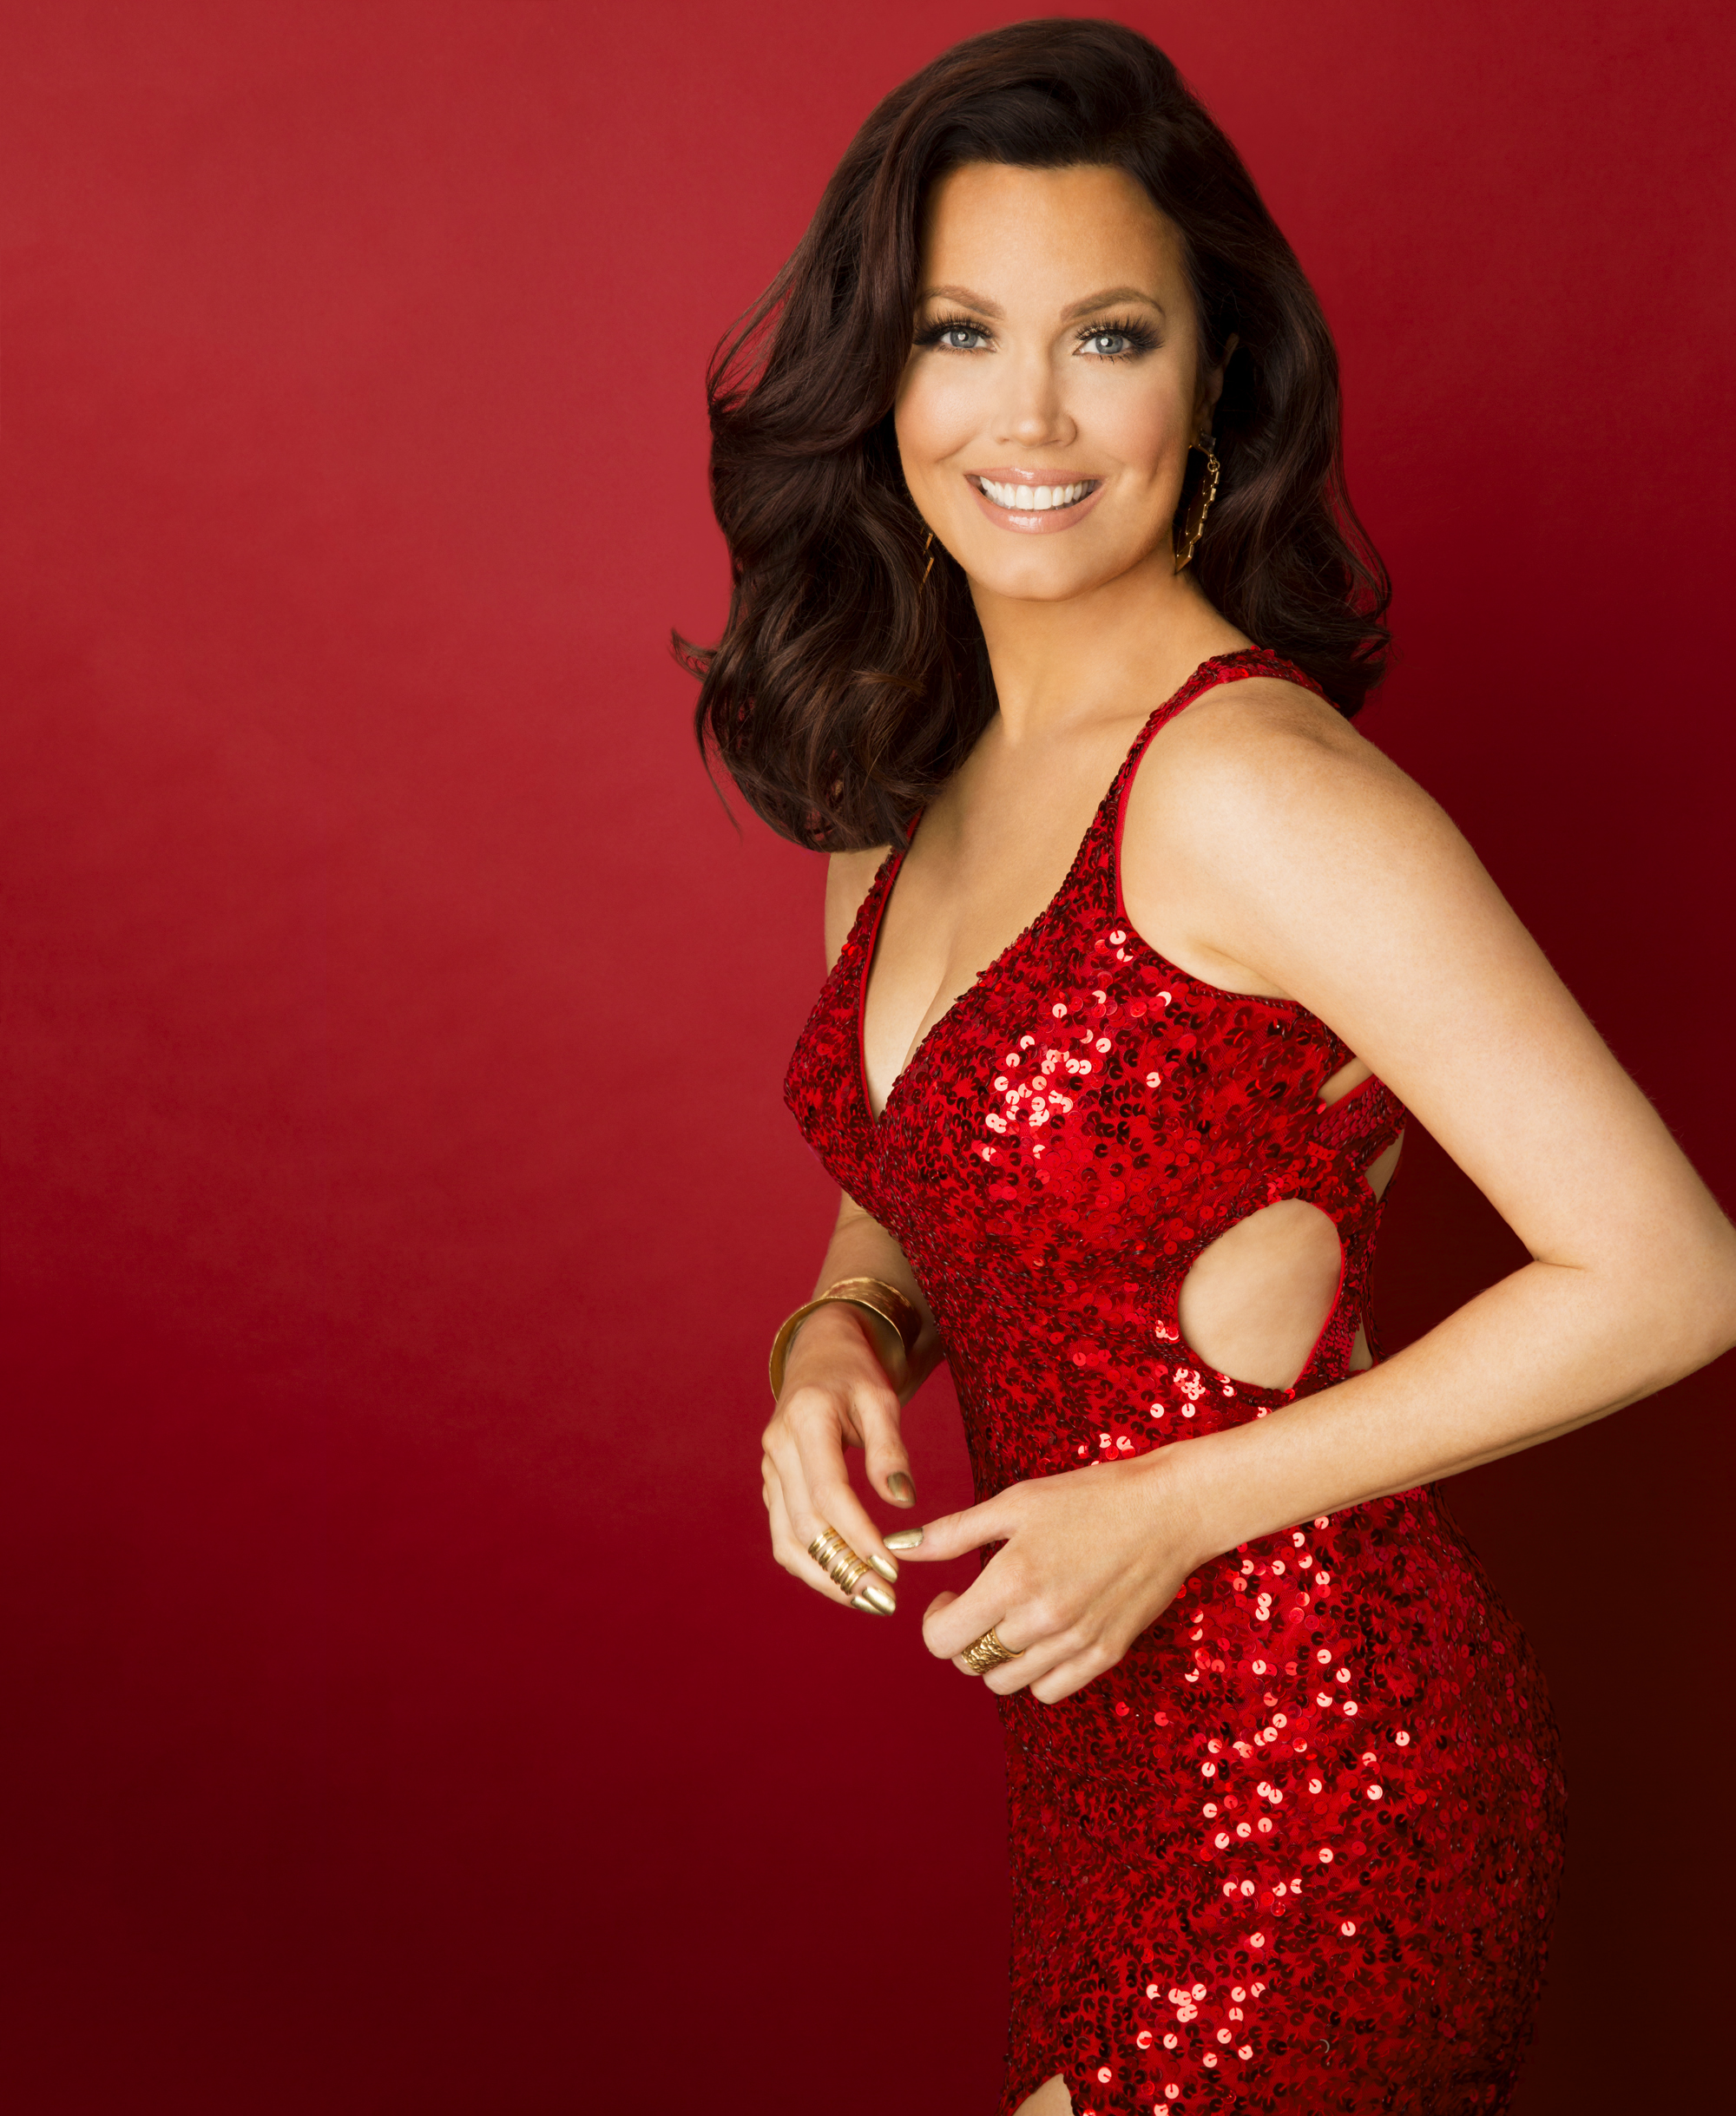 Forum on this topic: Valarie Pettiford, bellamy-young/